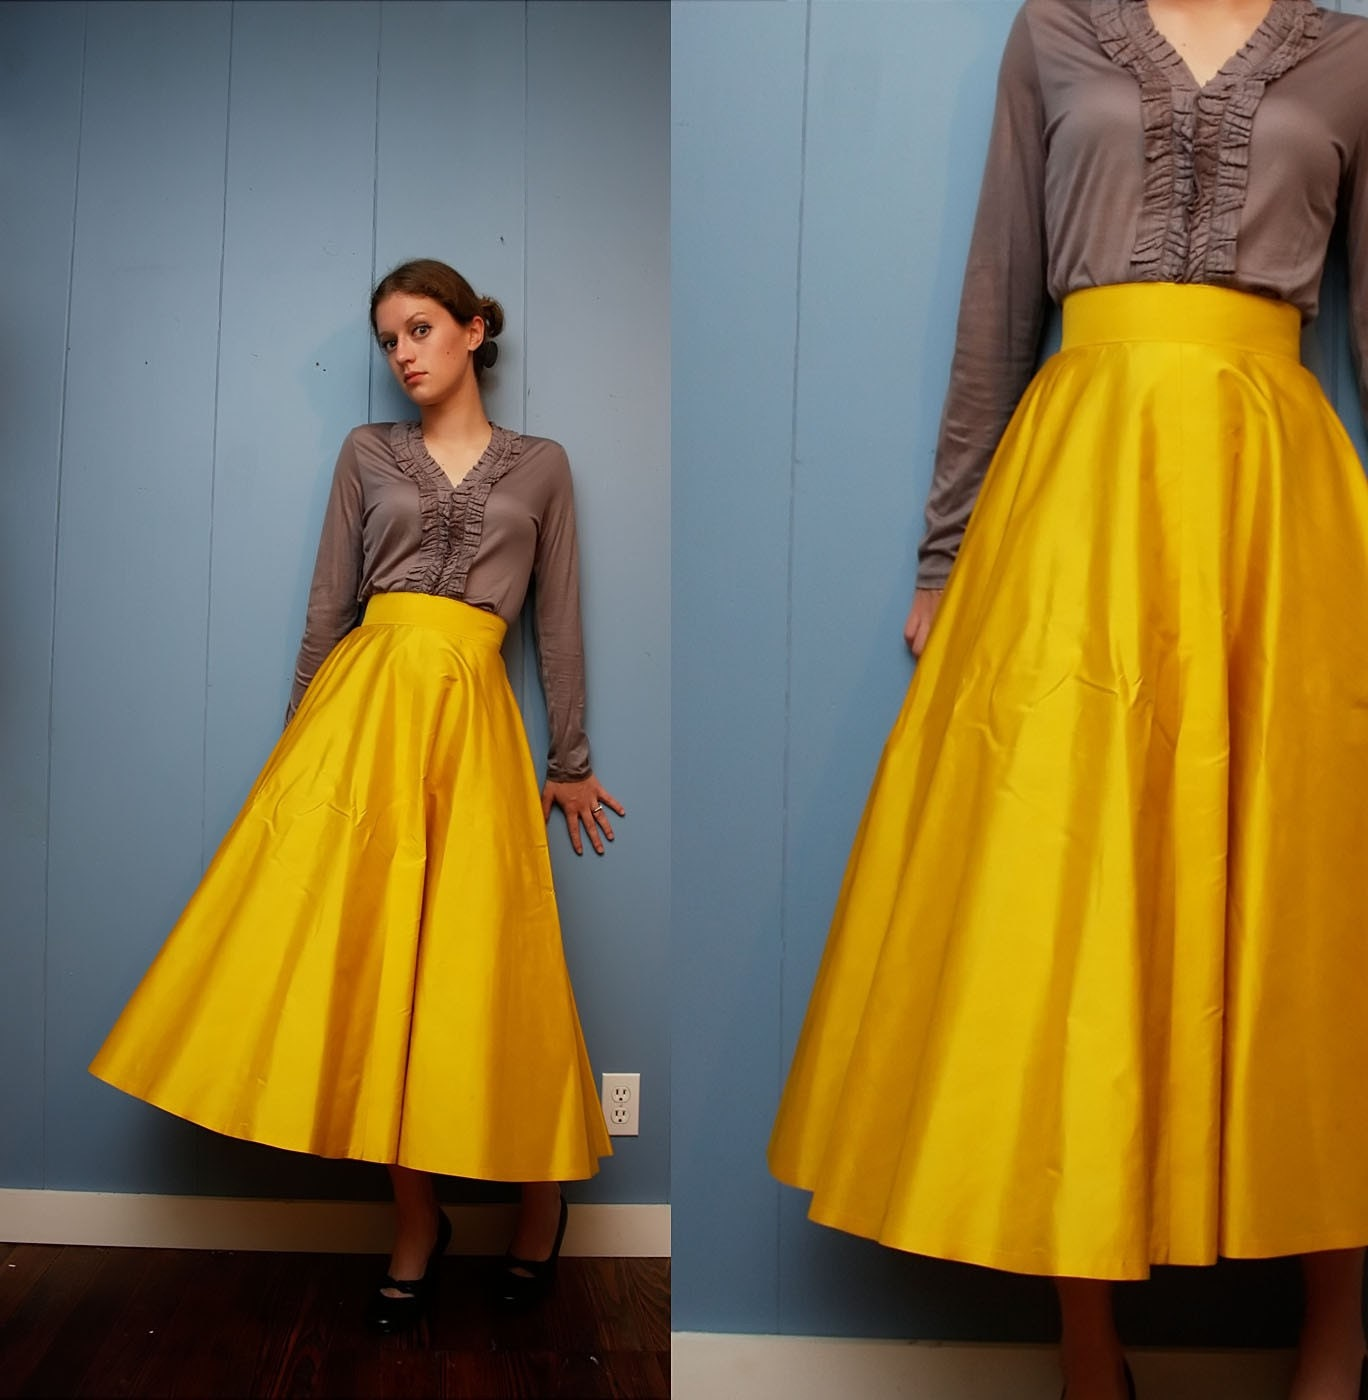 Vintage Floor Length Formal Yellow Snow White Skirt by